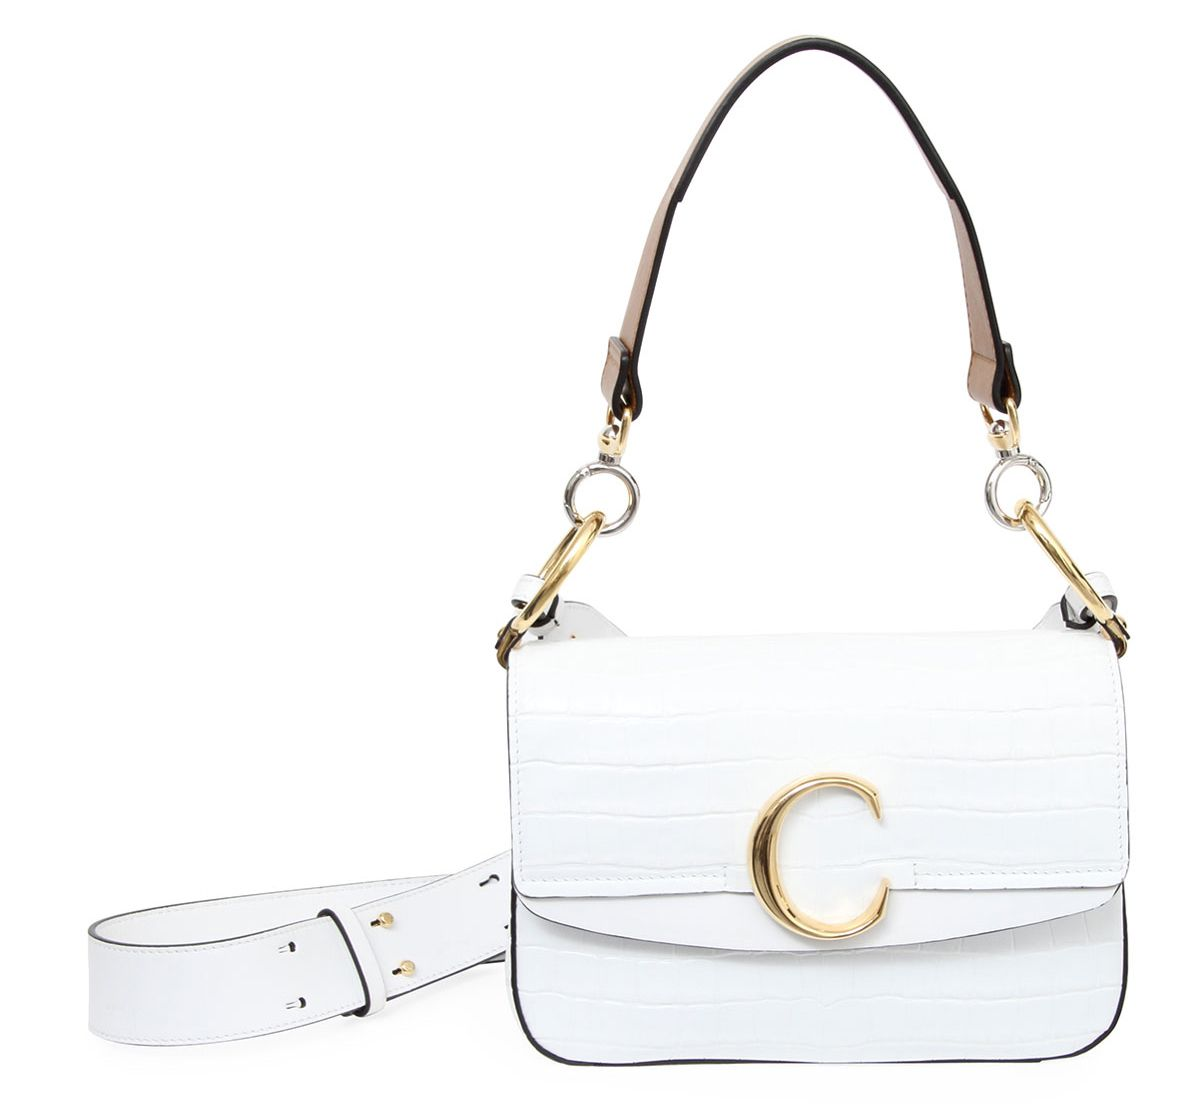 shop-chloe-c-white-croc-embossed-leather-shoulder-bag